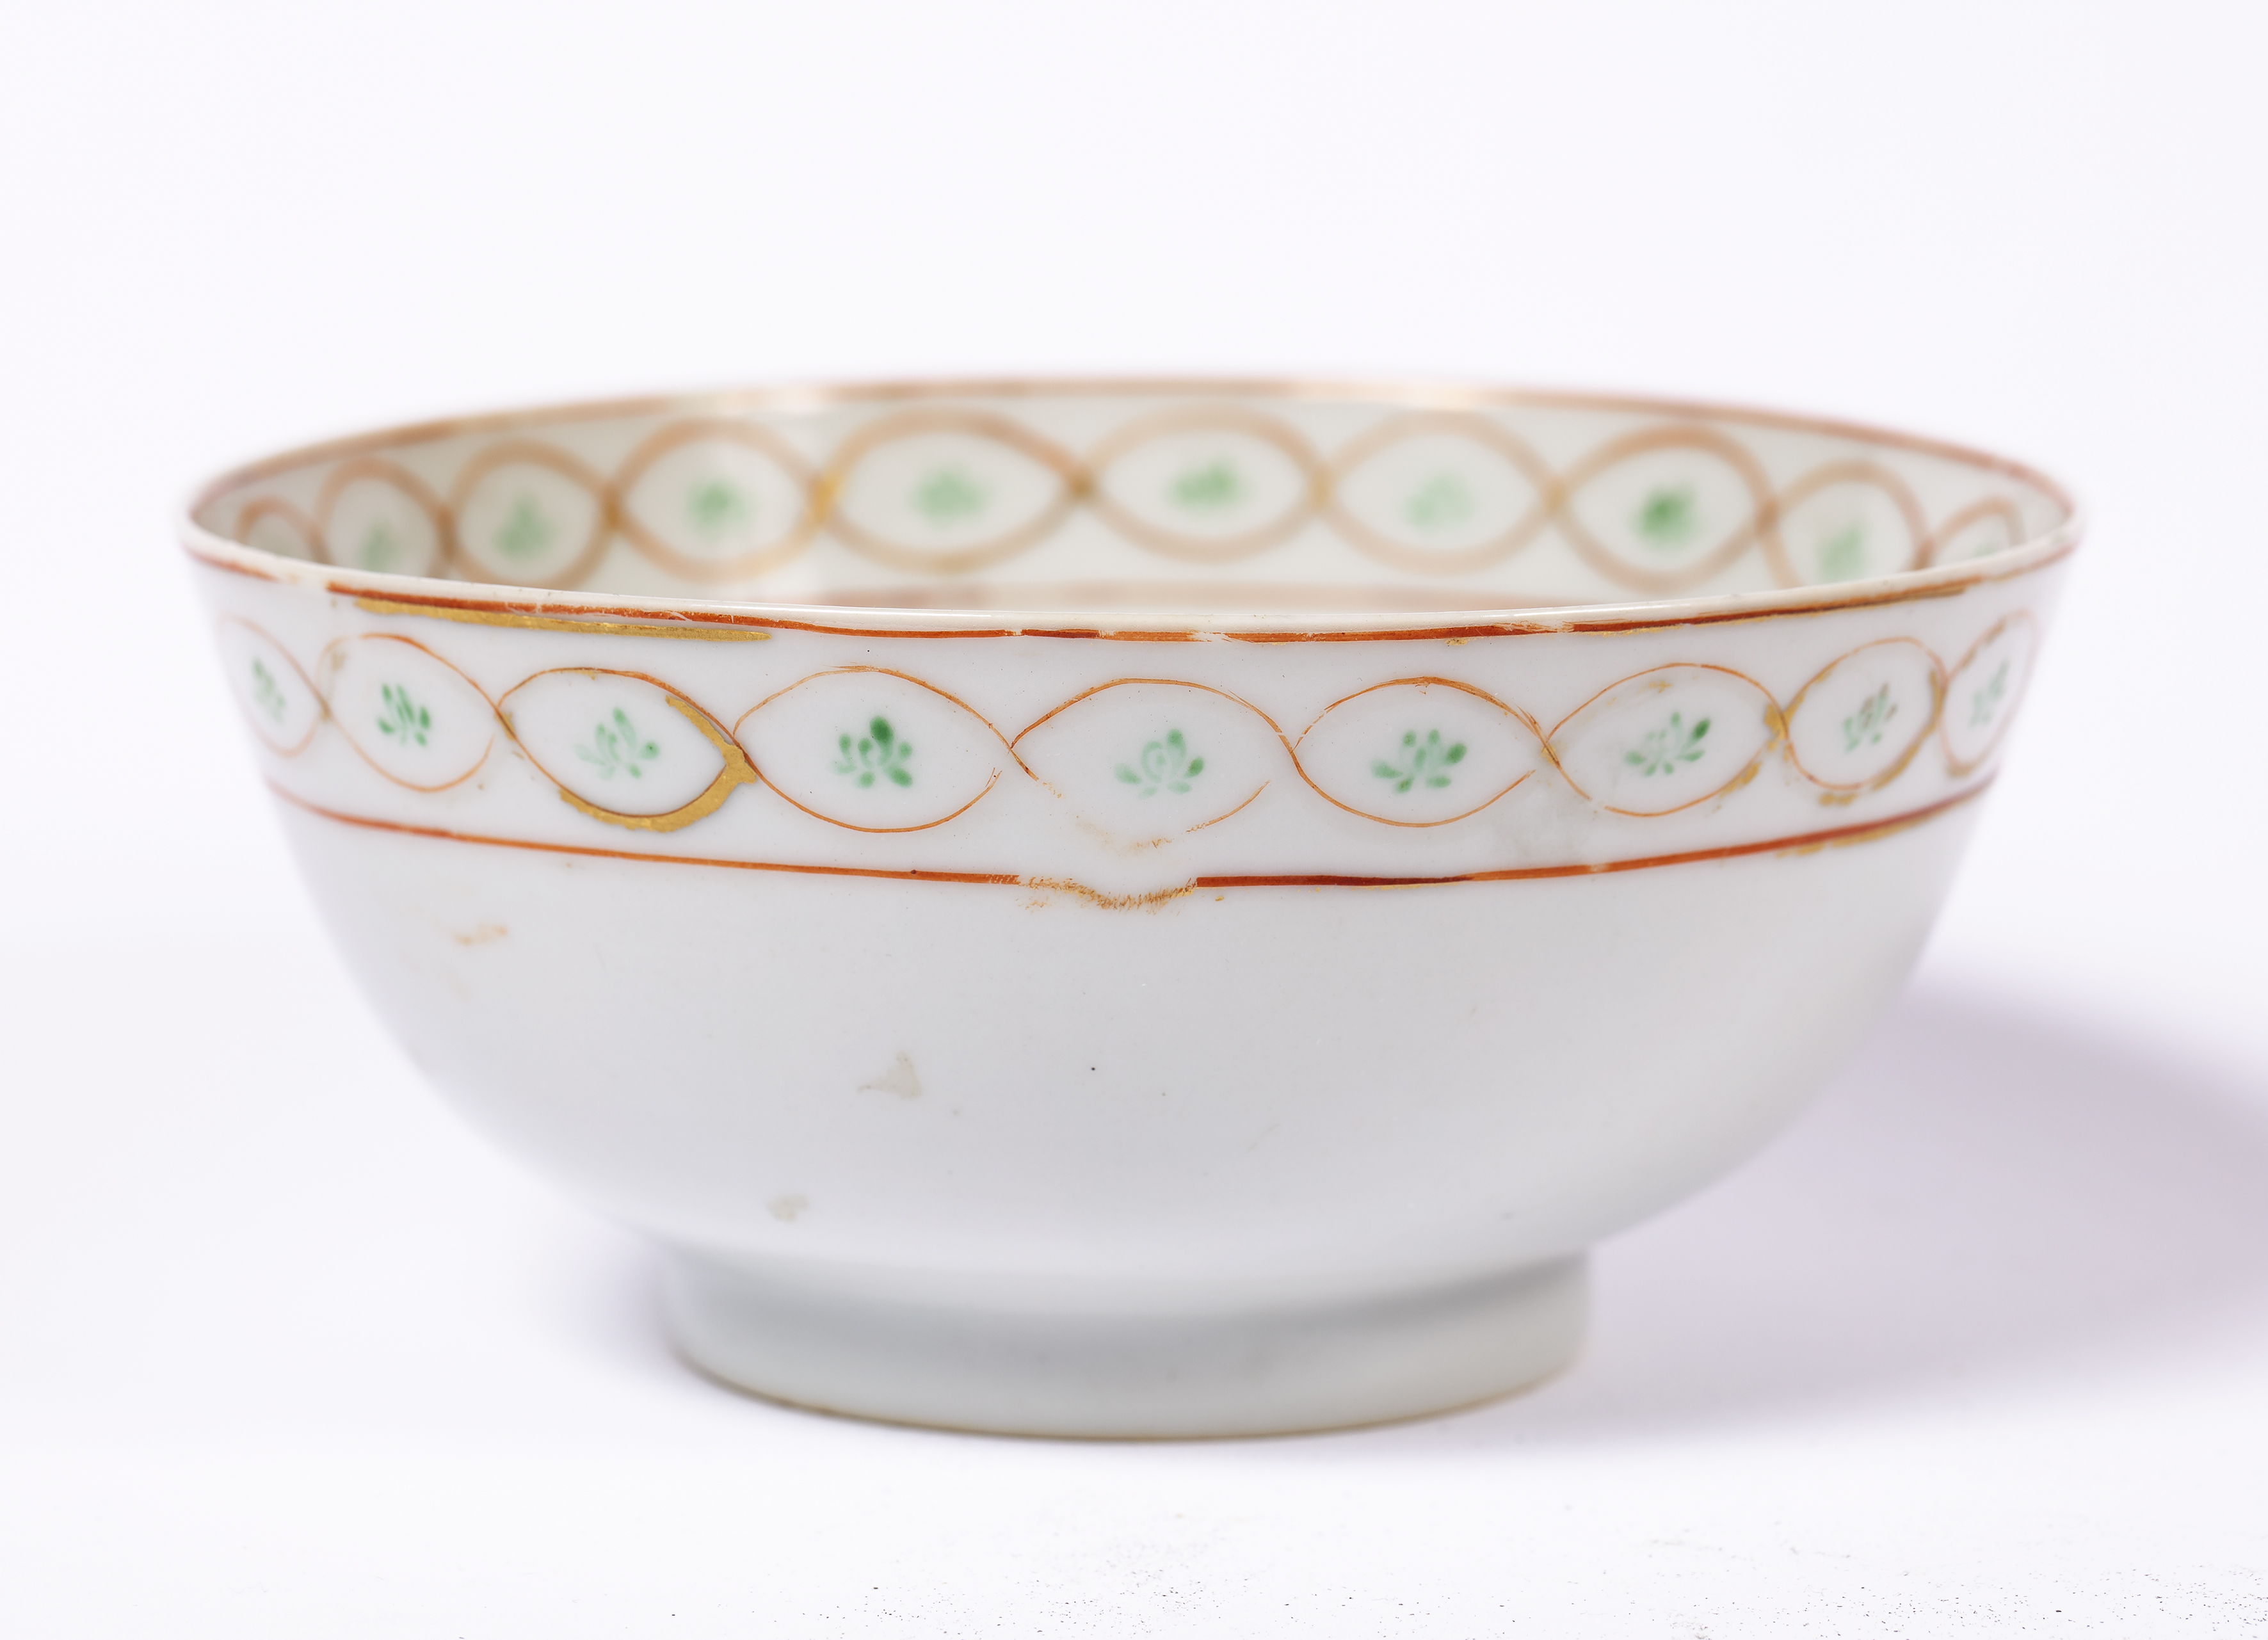 Porcelain sweetmeat dish Chinese, Qianlong of circular form and greenish celadon-type glaze, with - Image 3 of 4